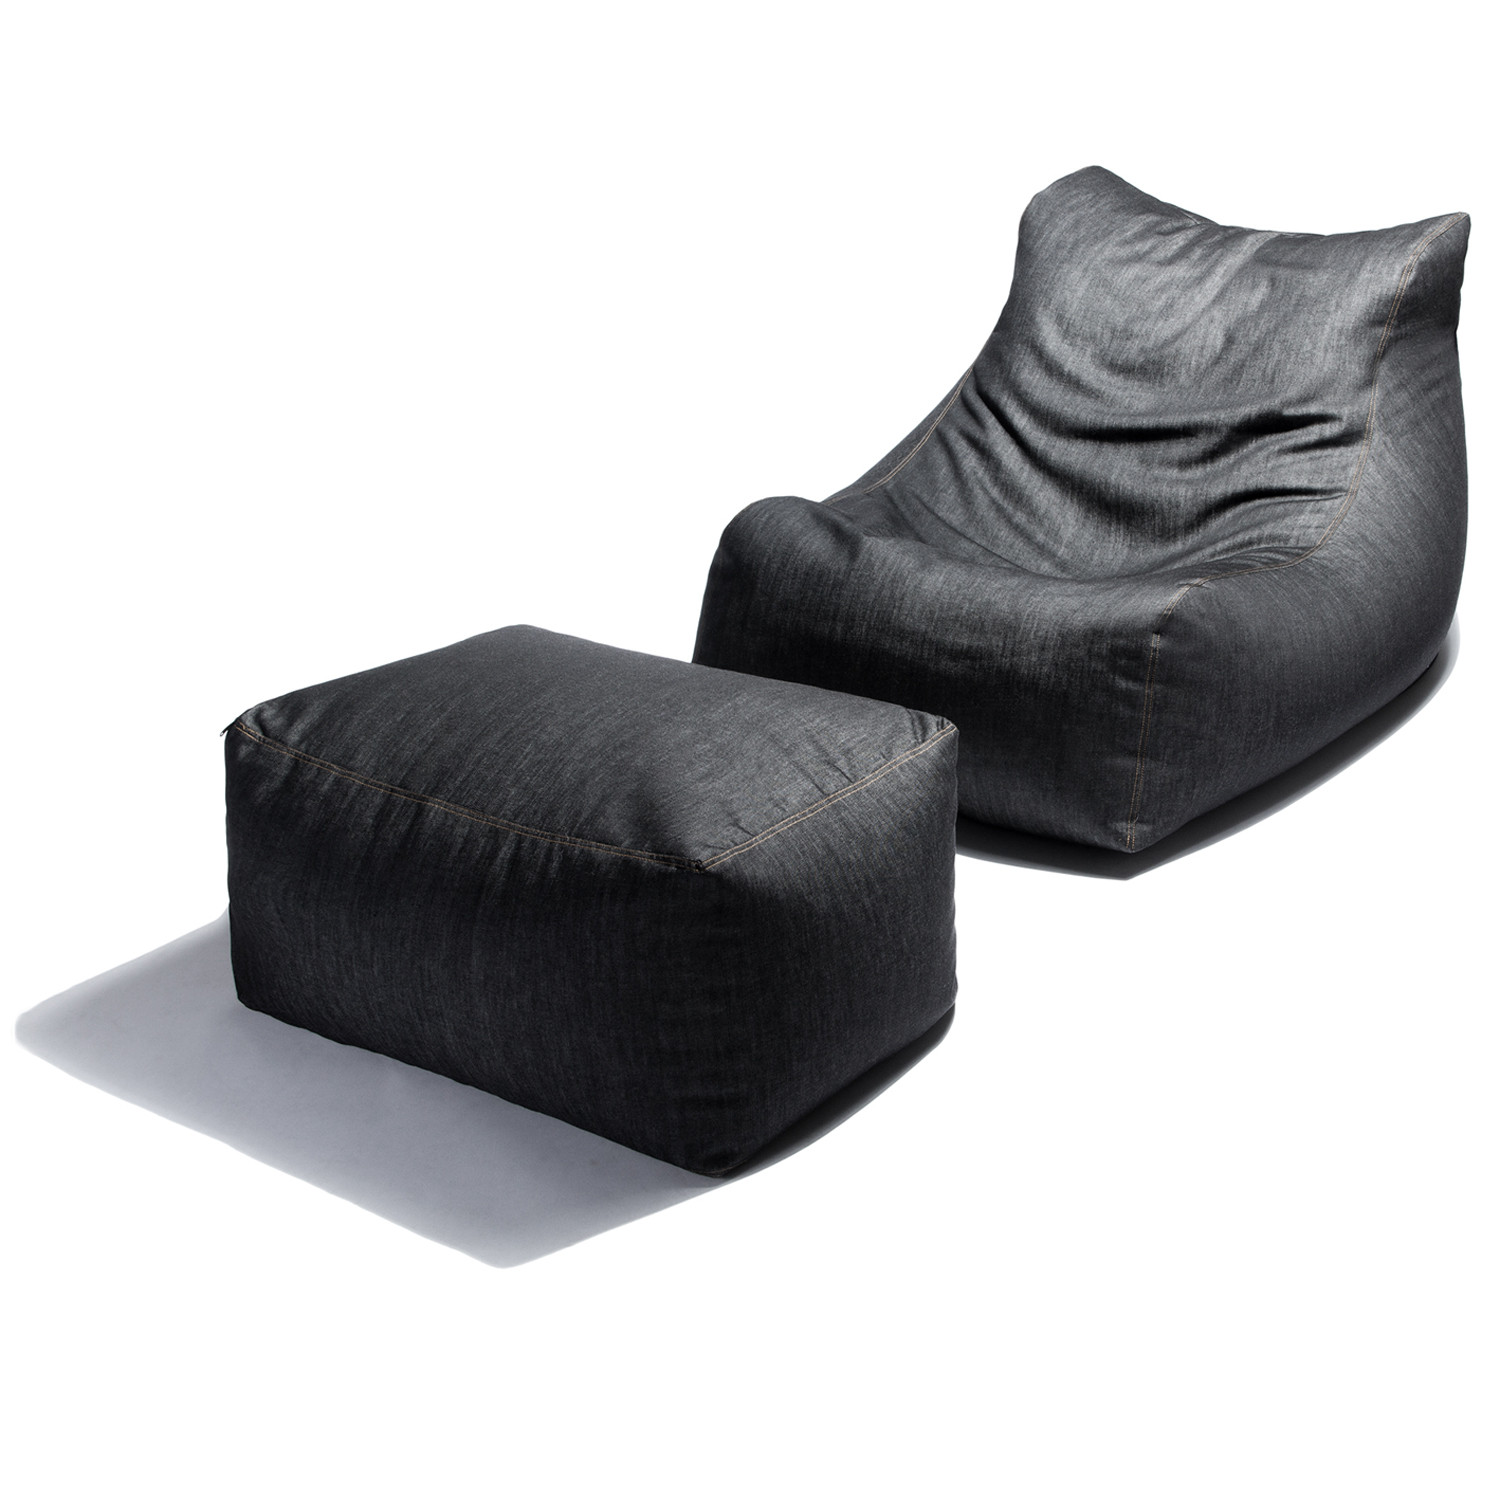 Jaxx Ponce Bean Bag Chair With Leon Ottoman